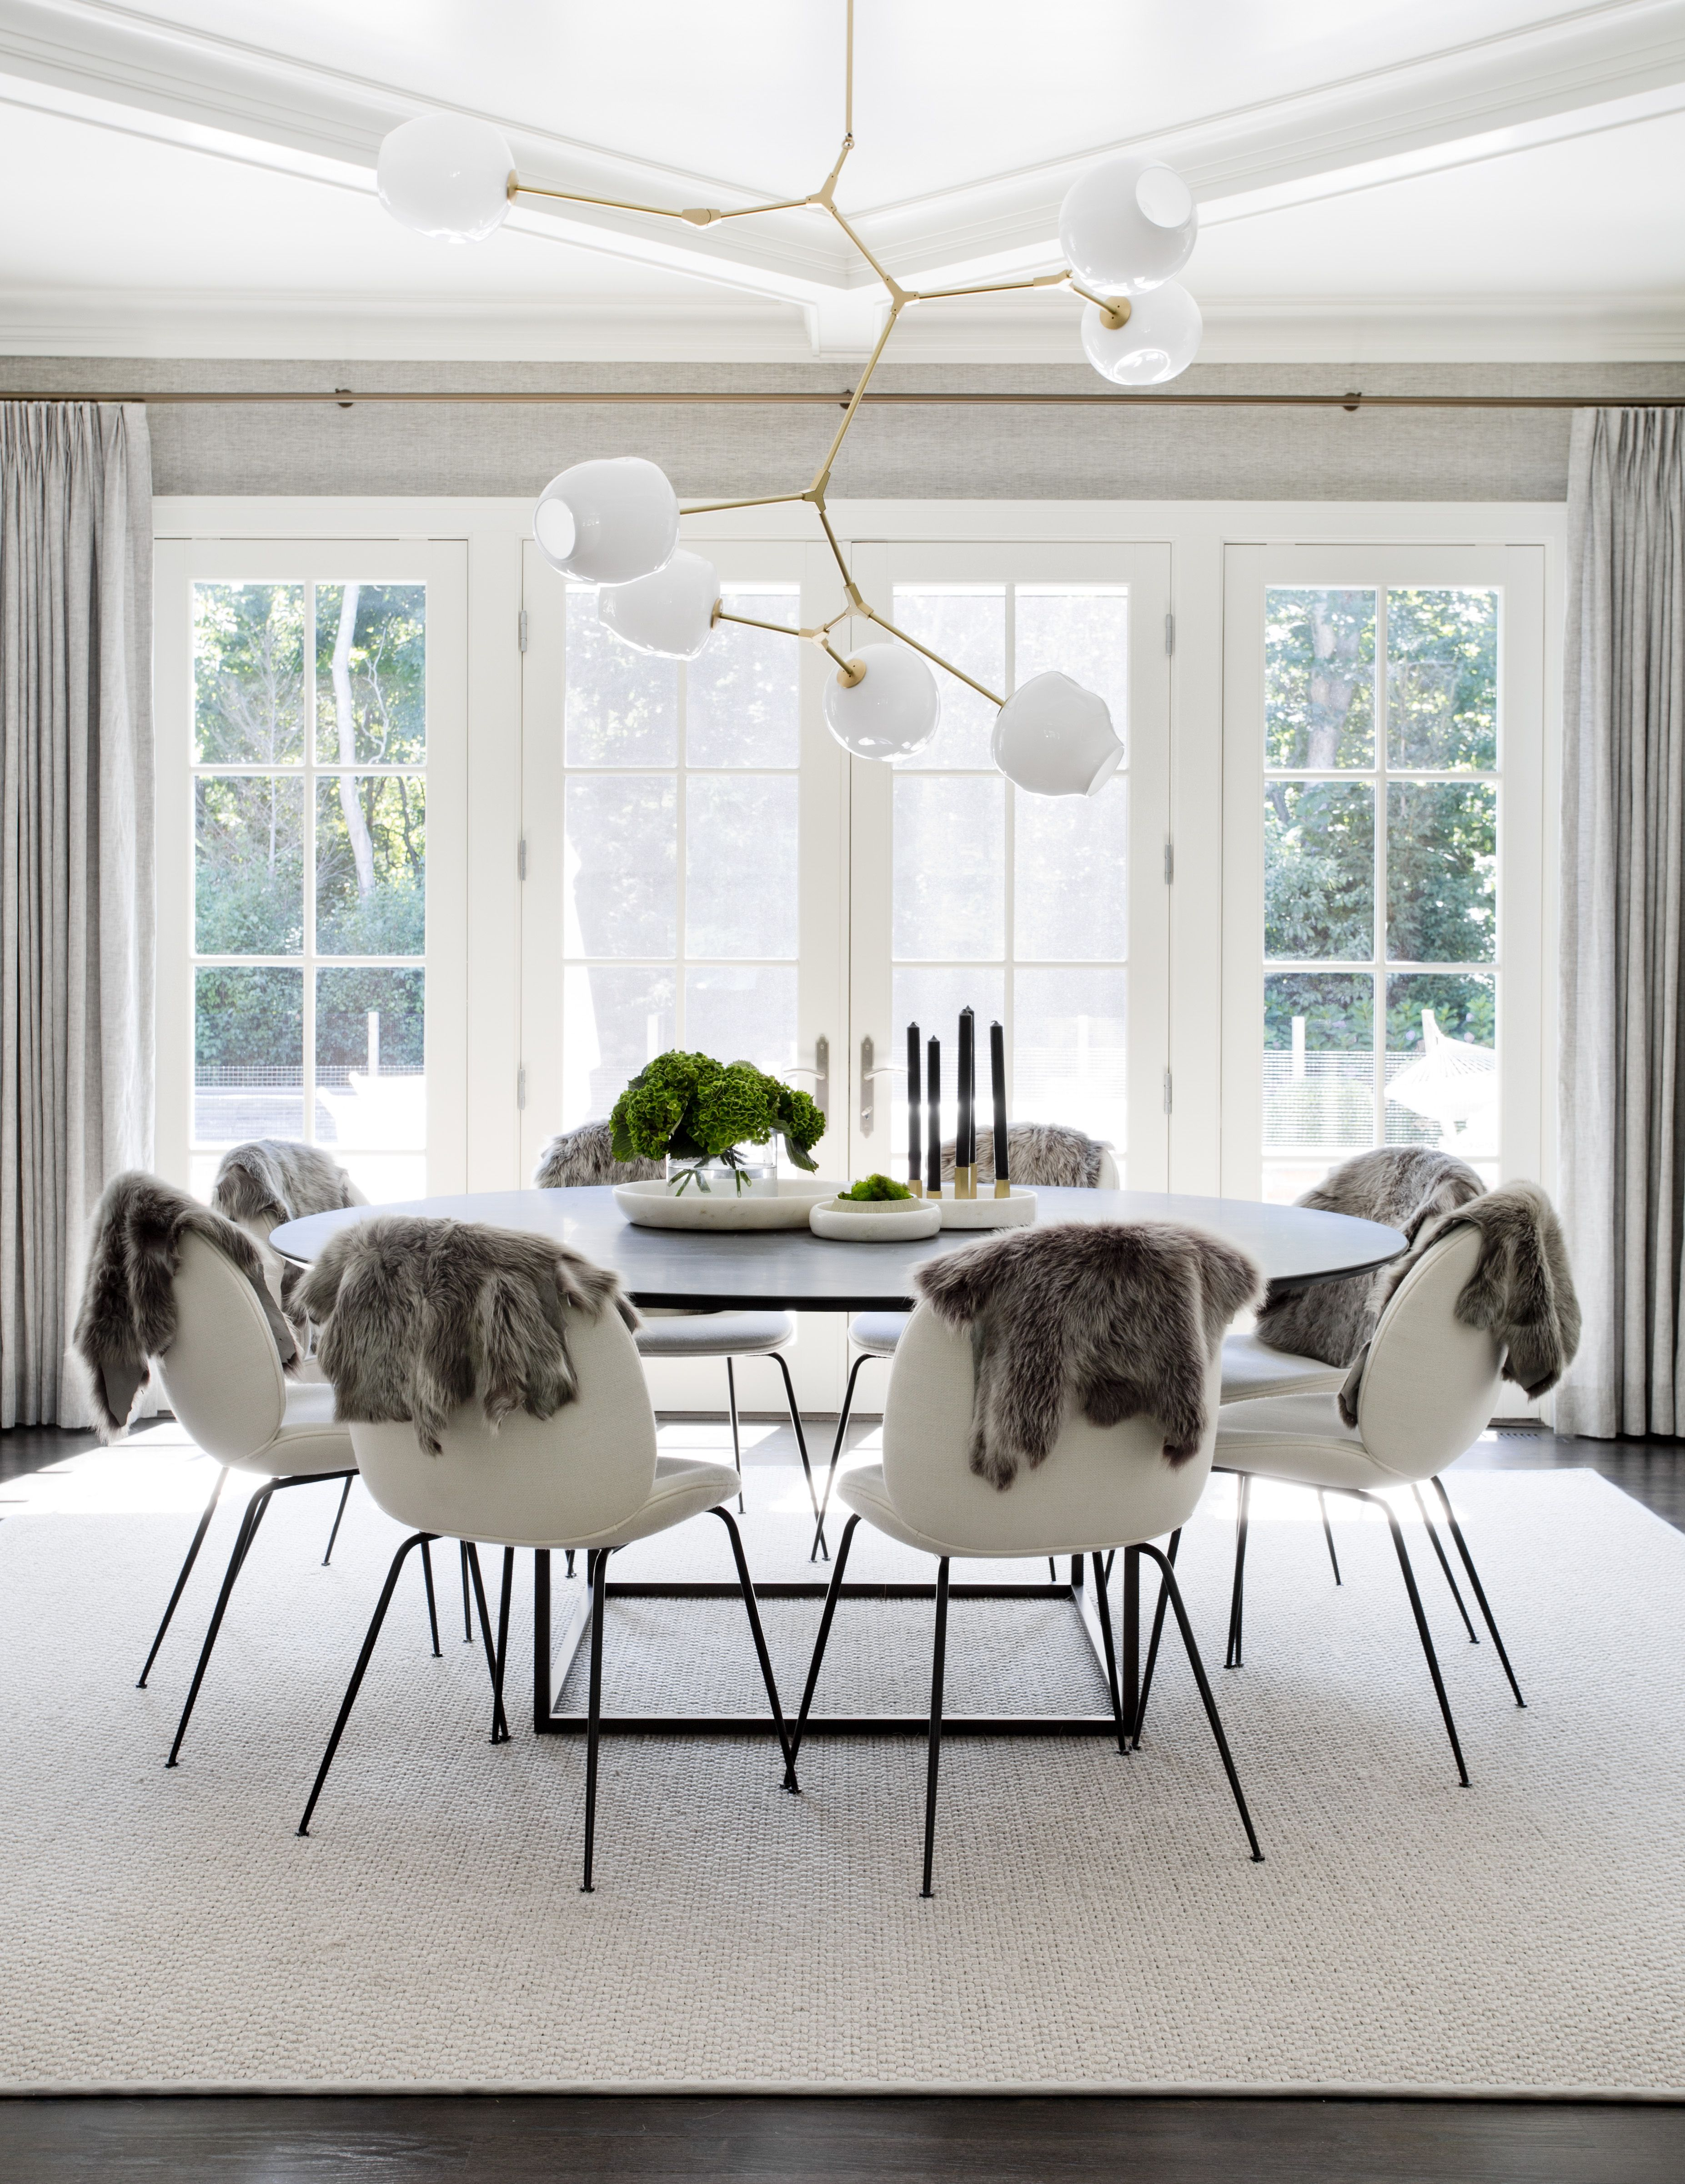 new creating donna the luxpad dotan clean paquin best by designs are on firm york fairfield based that focused designers is run interior claire elegant vibrant westchester county spaces in latest a